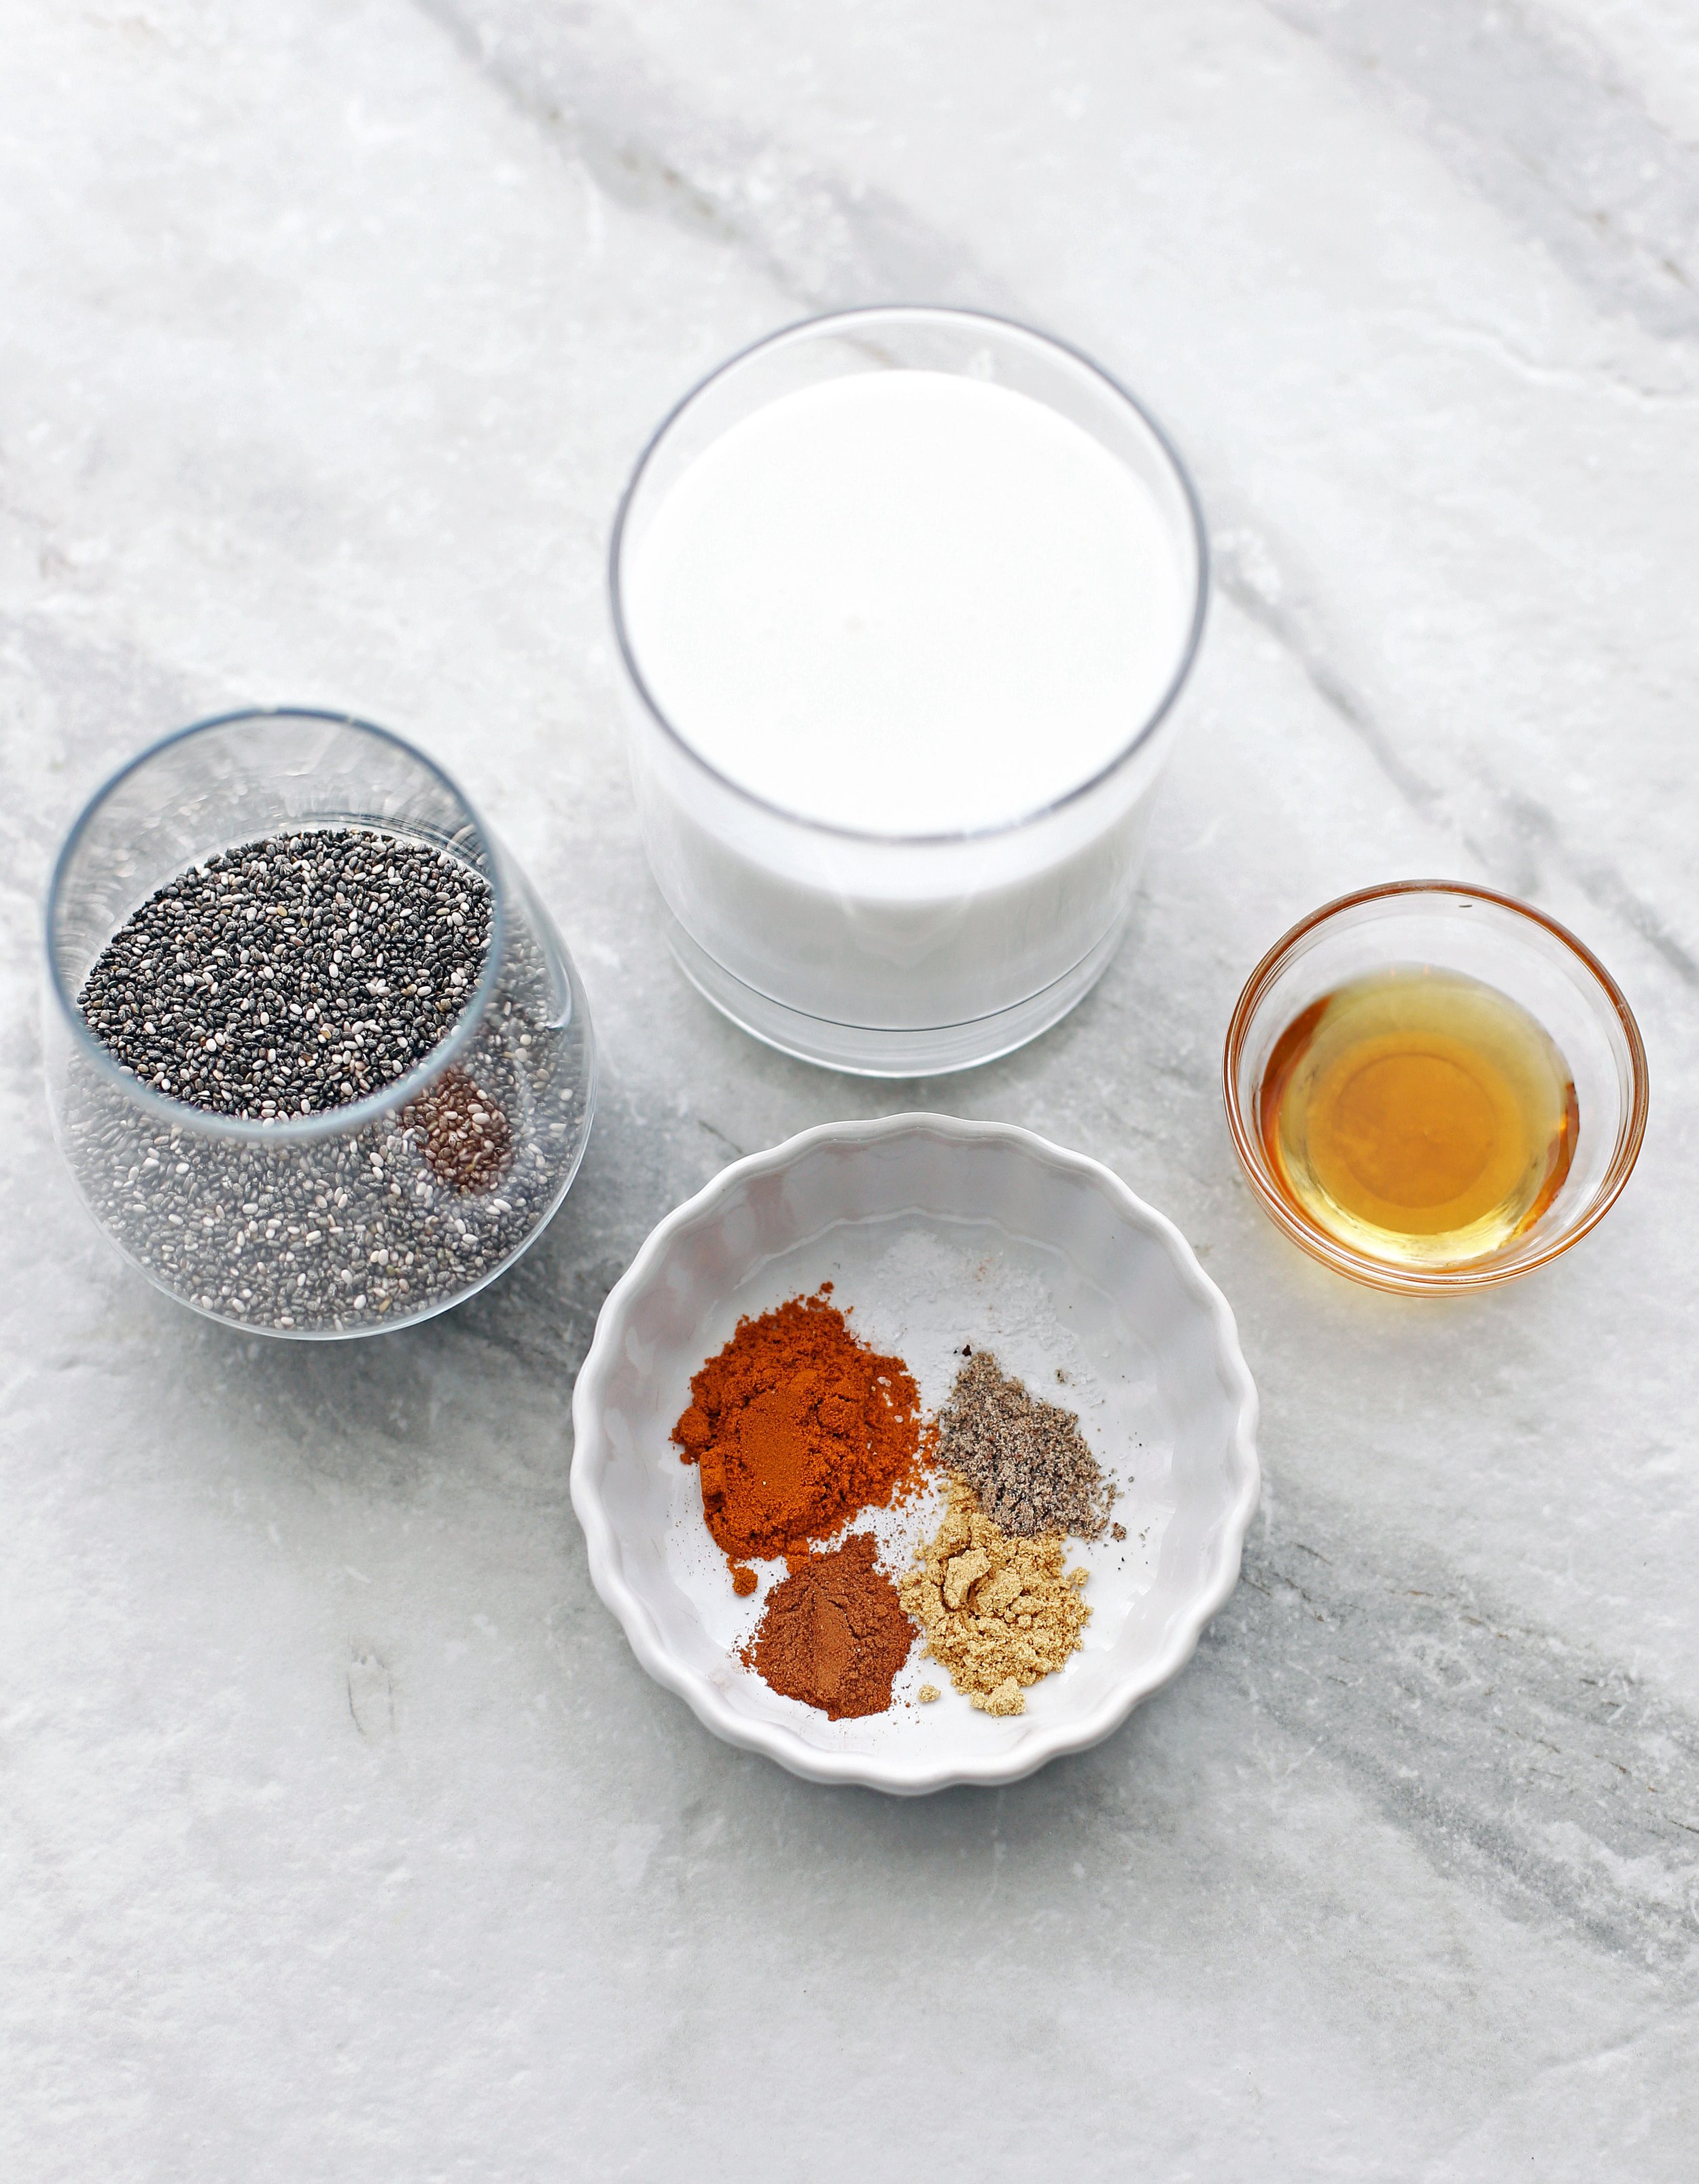 Chia seeds, coconut milk, maple syrup, and spices including turmeric, ginger, cinnamon, and cardamom in glasses and bowls.